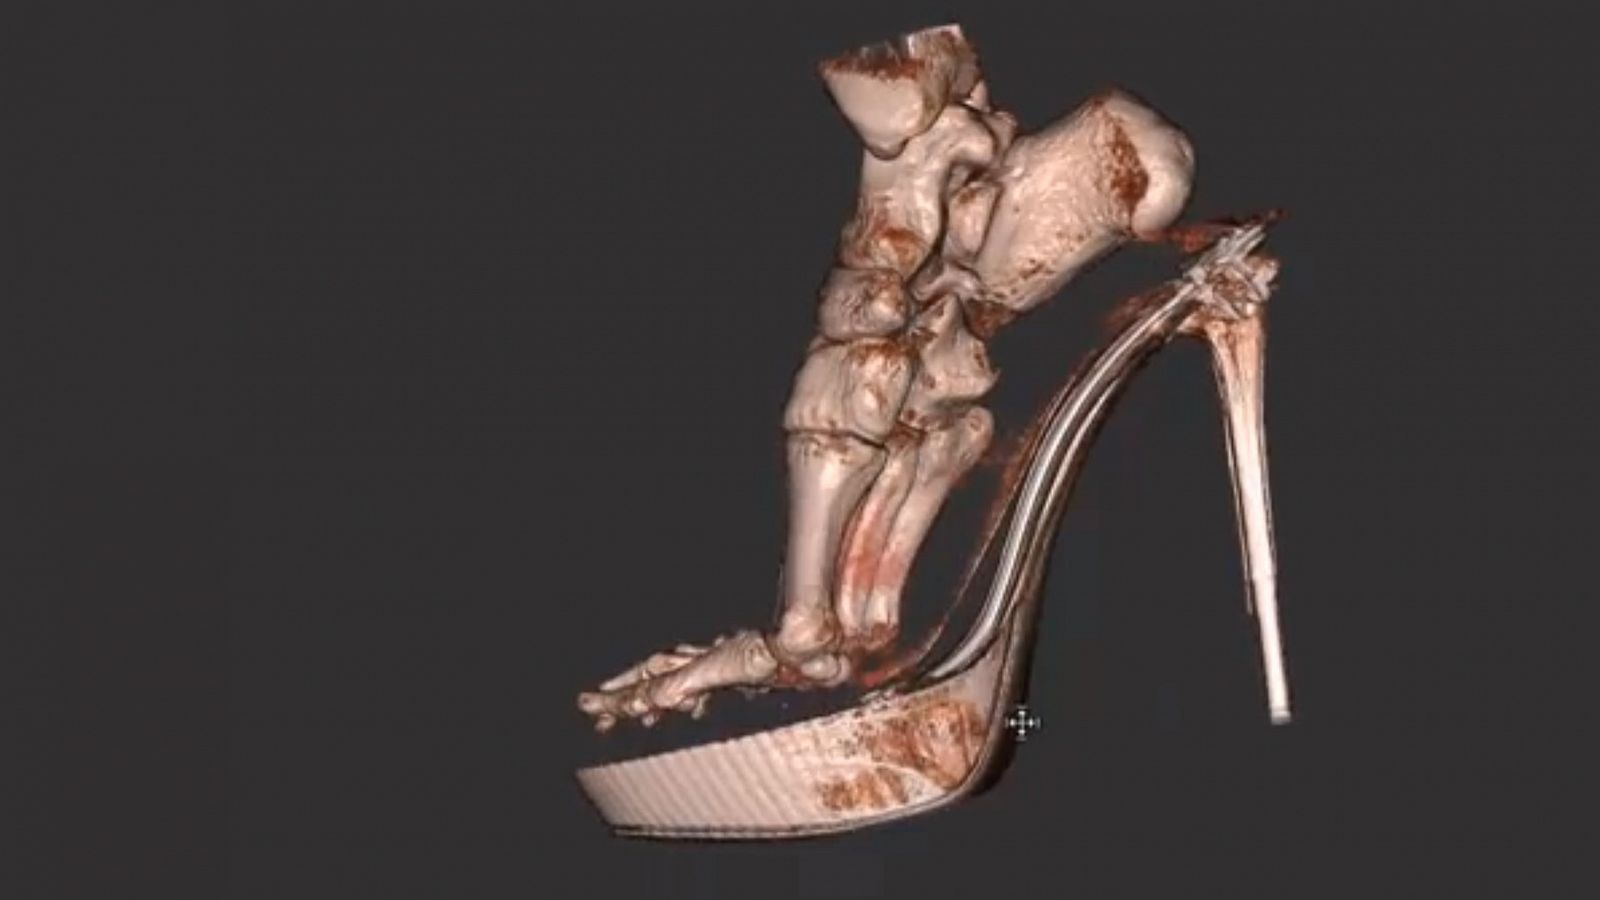 f7b41ab5a92 3-D Scan Reveals Foot Damage by High Heels - ABC News